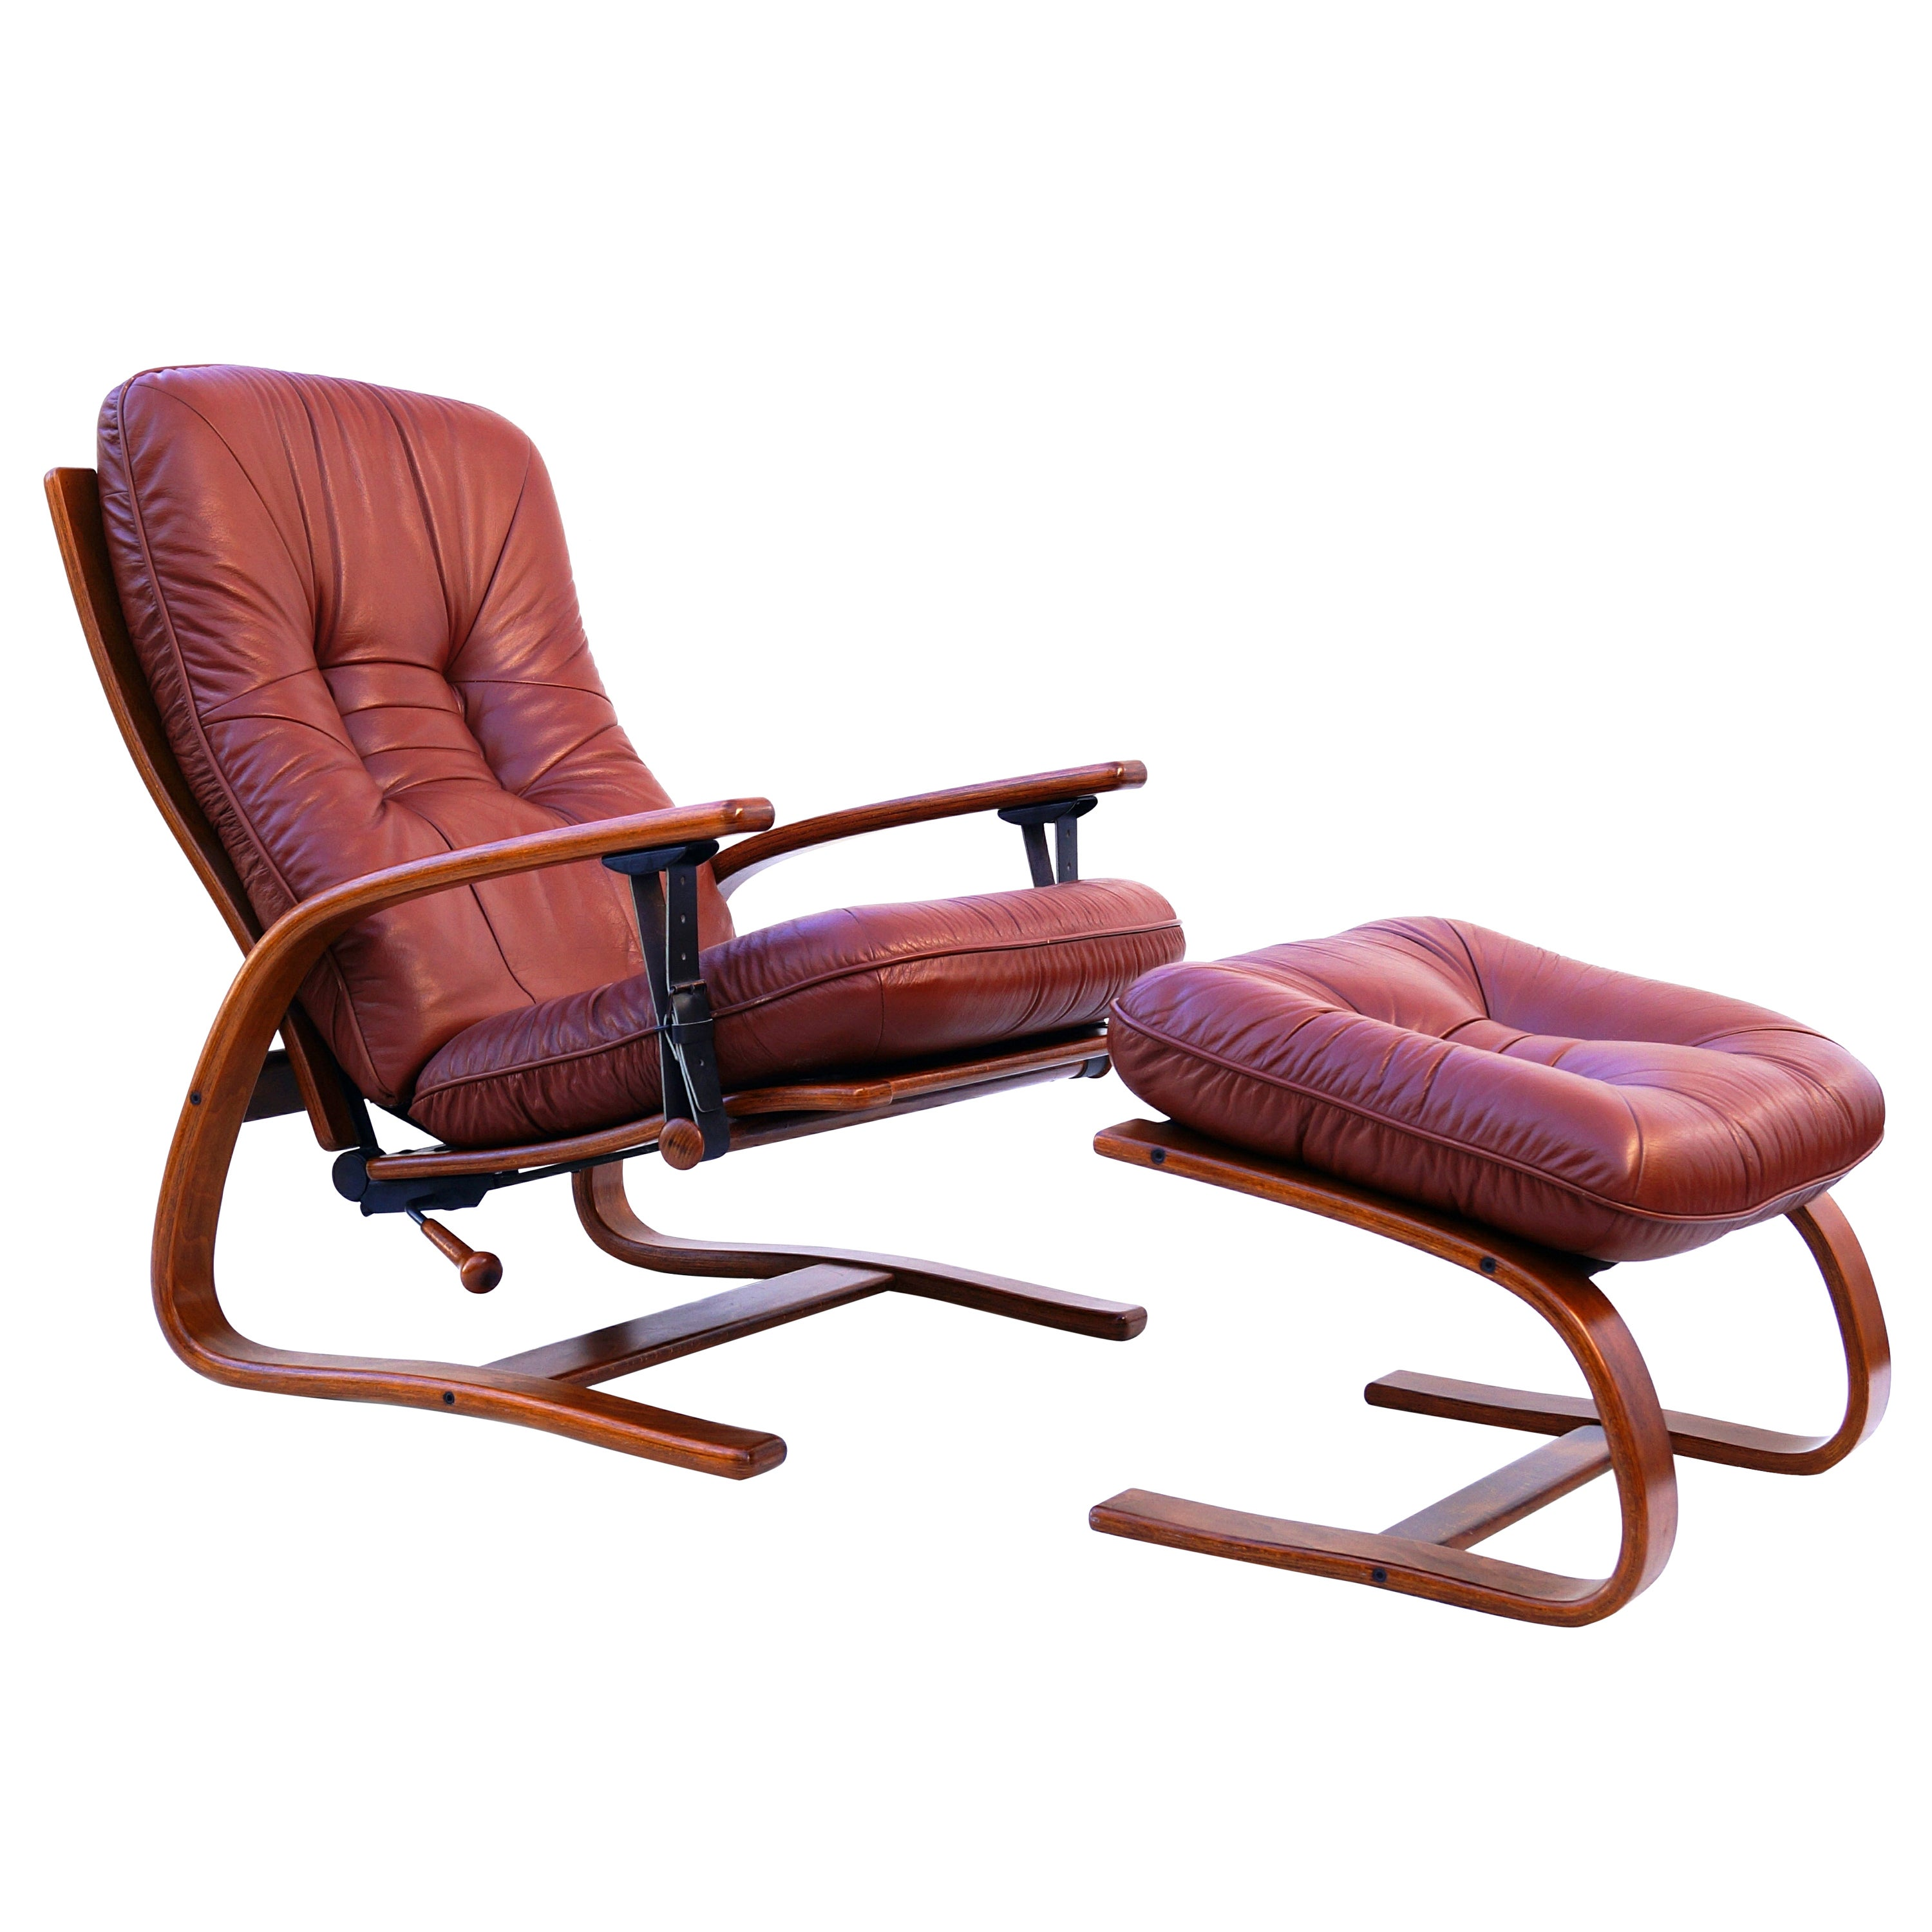 Midcentury Westnofa Leather Reclining Lounge Chair and Ottoman Ingmar Relling